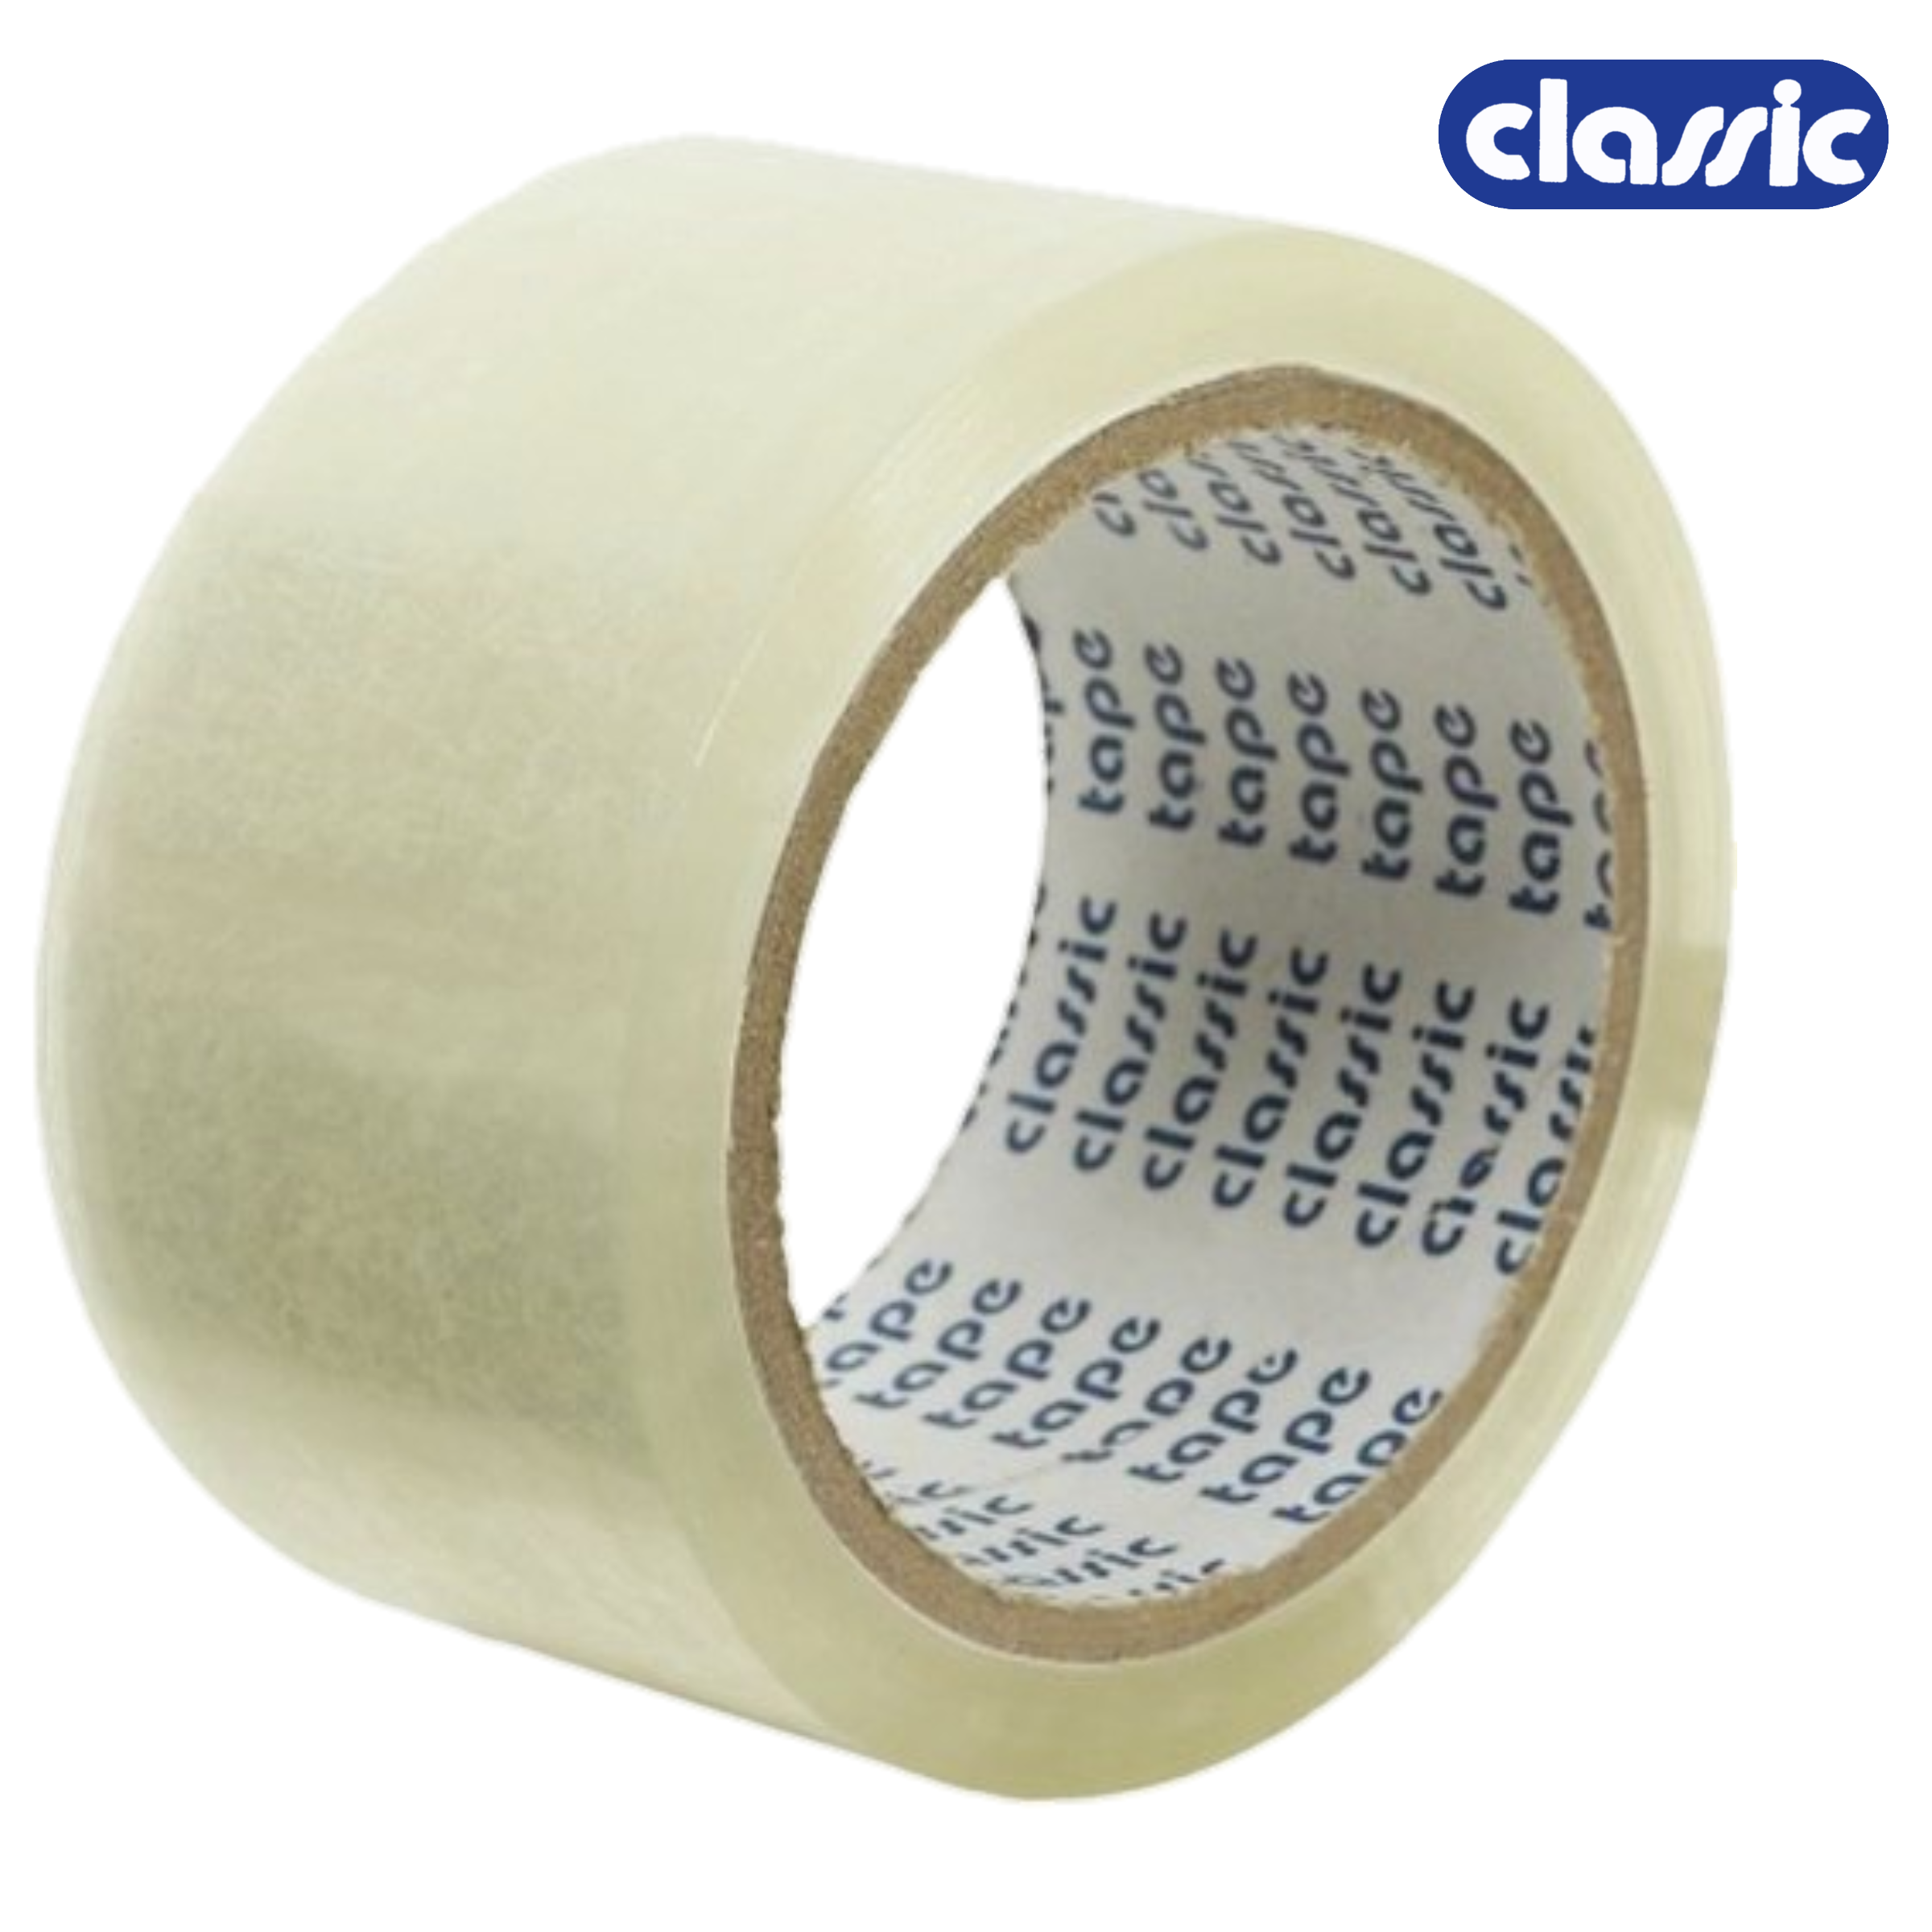 Classic 30 Micron 48 mm/2 Inch Transparent Self Adhesive Tape, Premium Quality,  Pack of 1 Roll